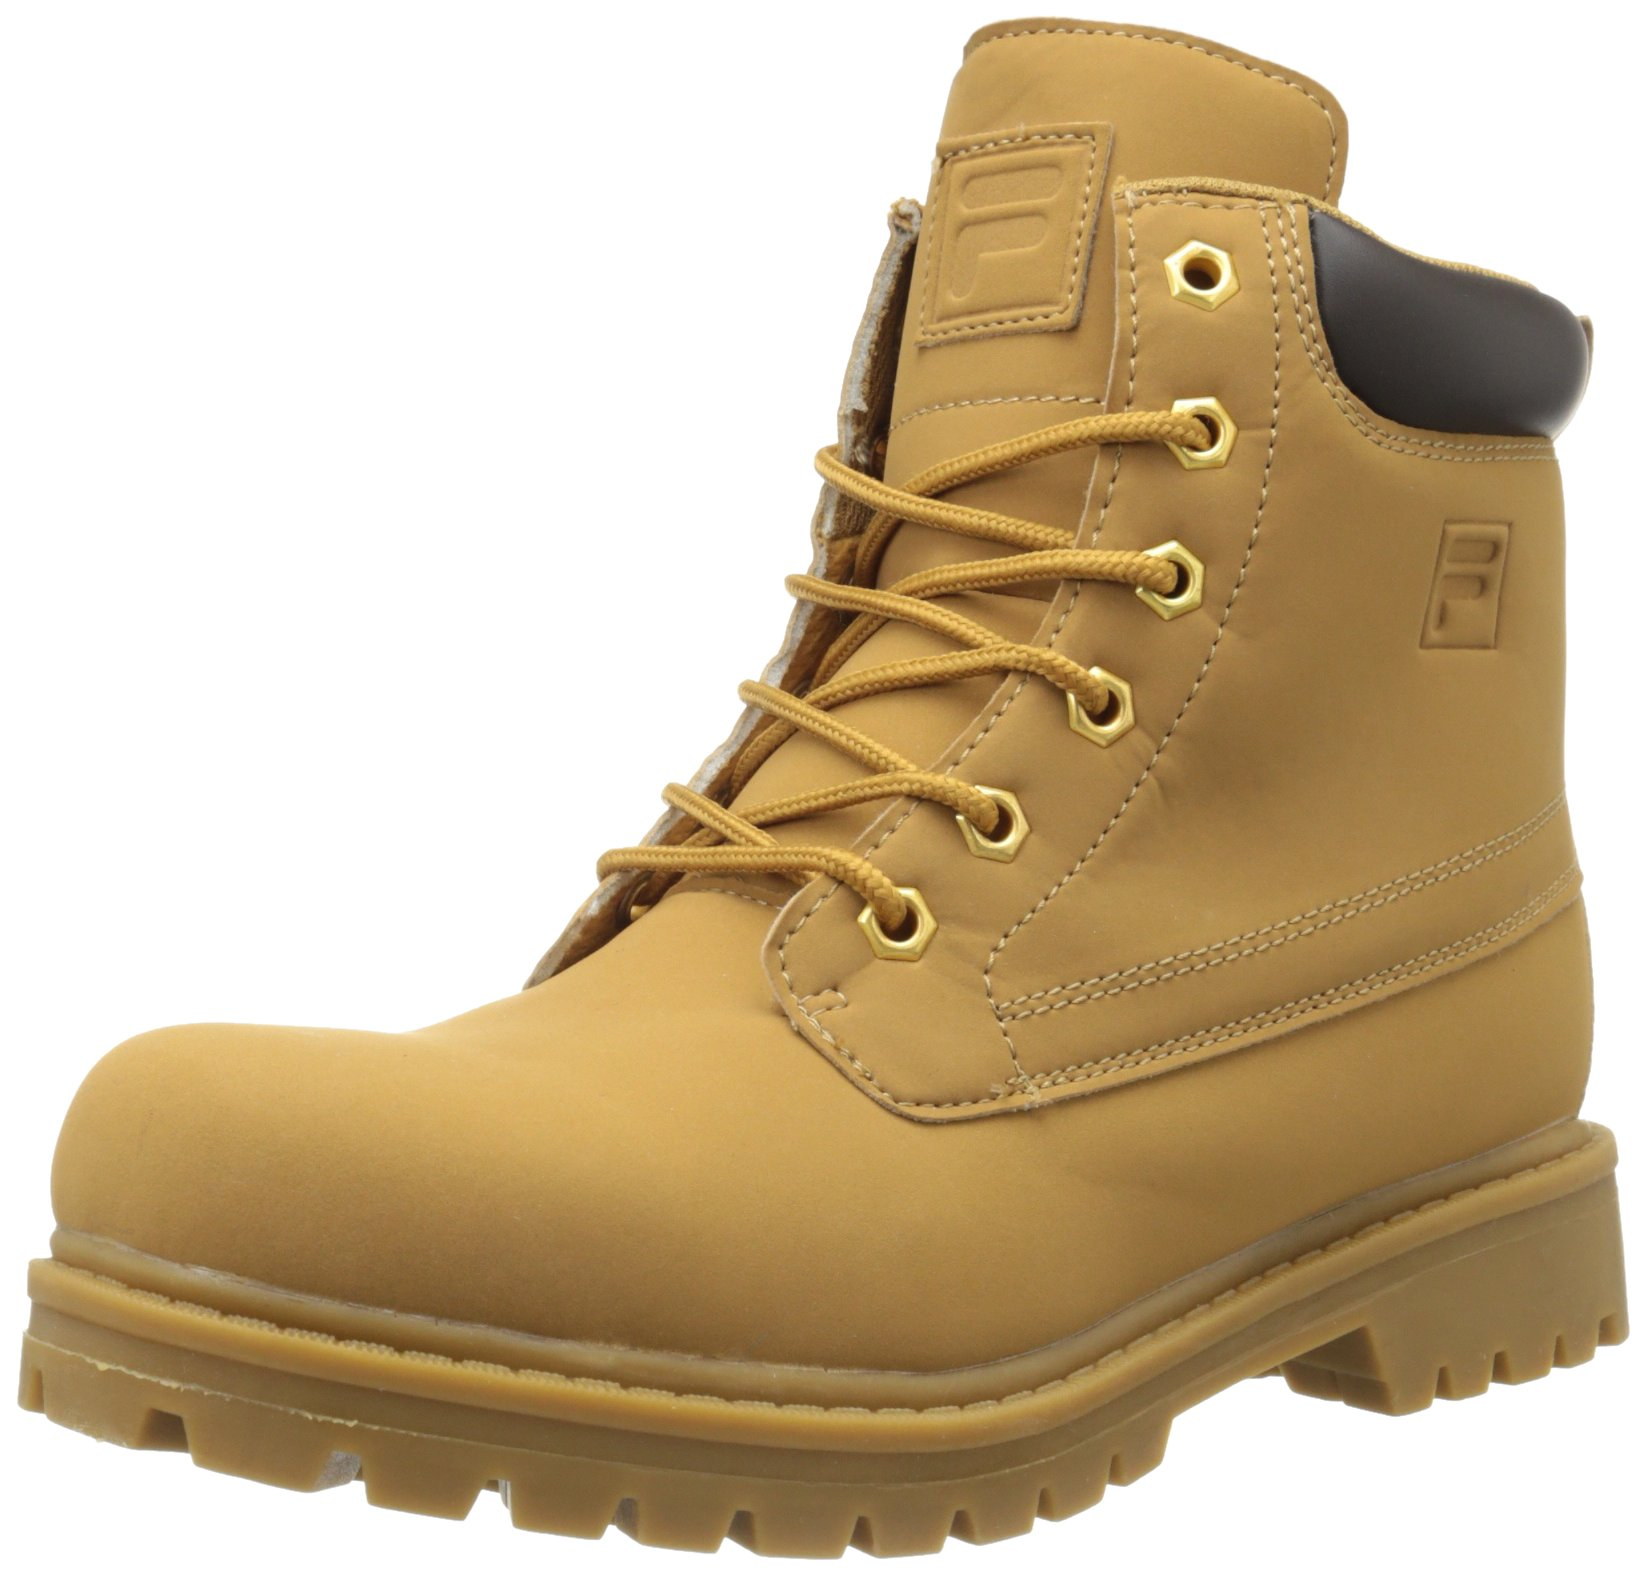 Fila 1SH40063-206 : Men's Edgewater 12 Hiking Boot Wheat Gum (12 D(M) US) by Fila